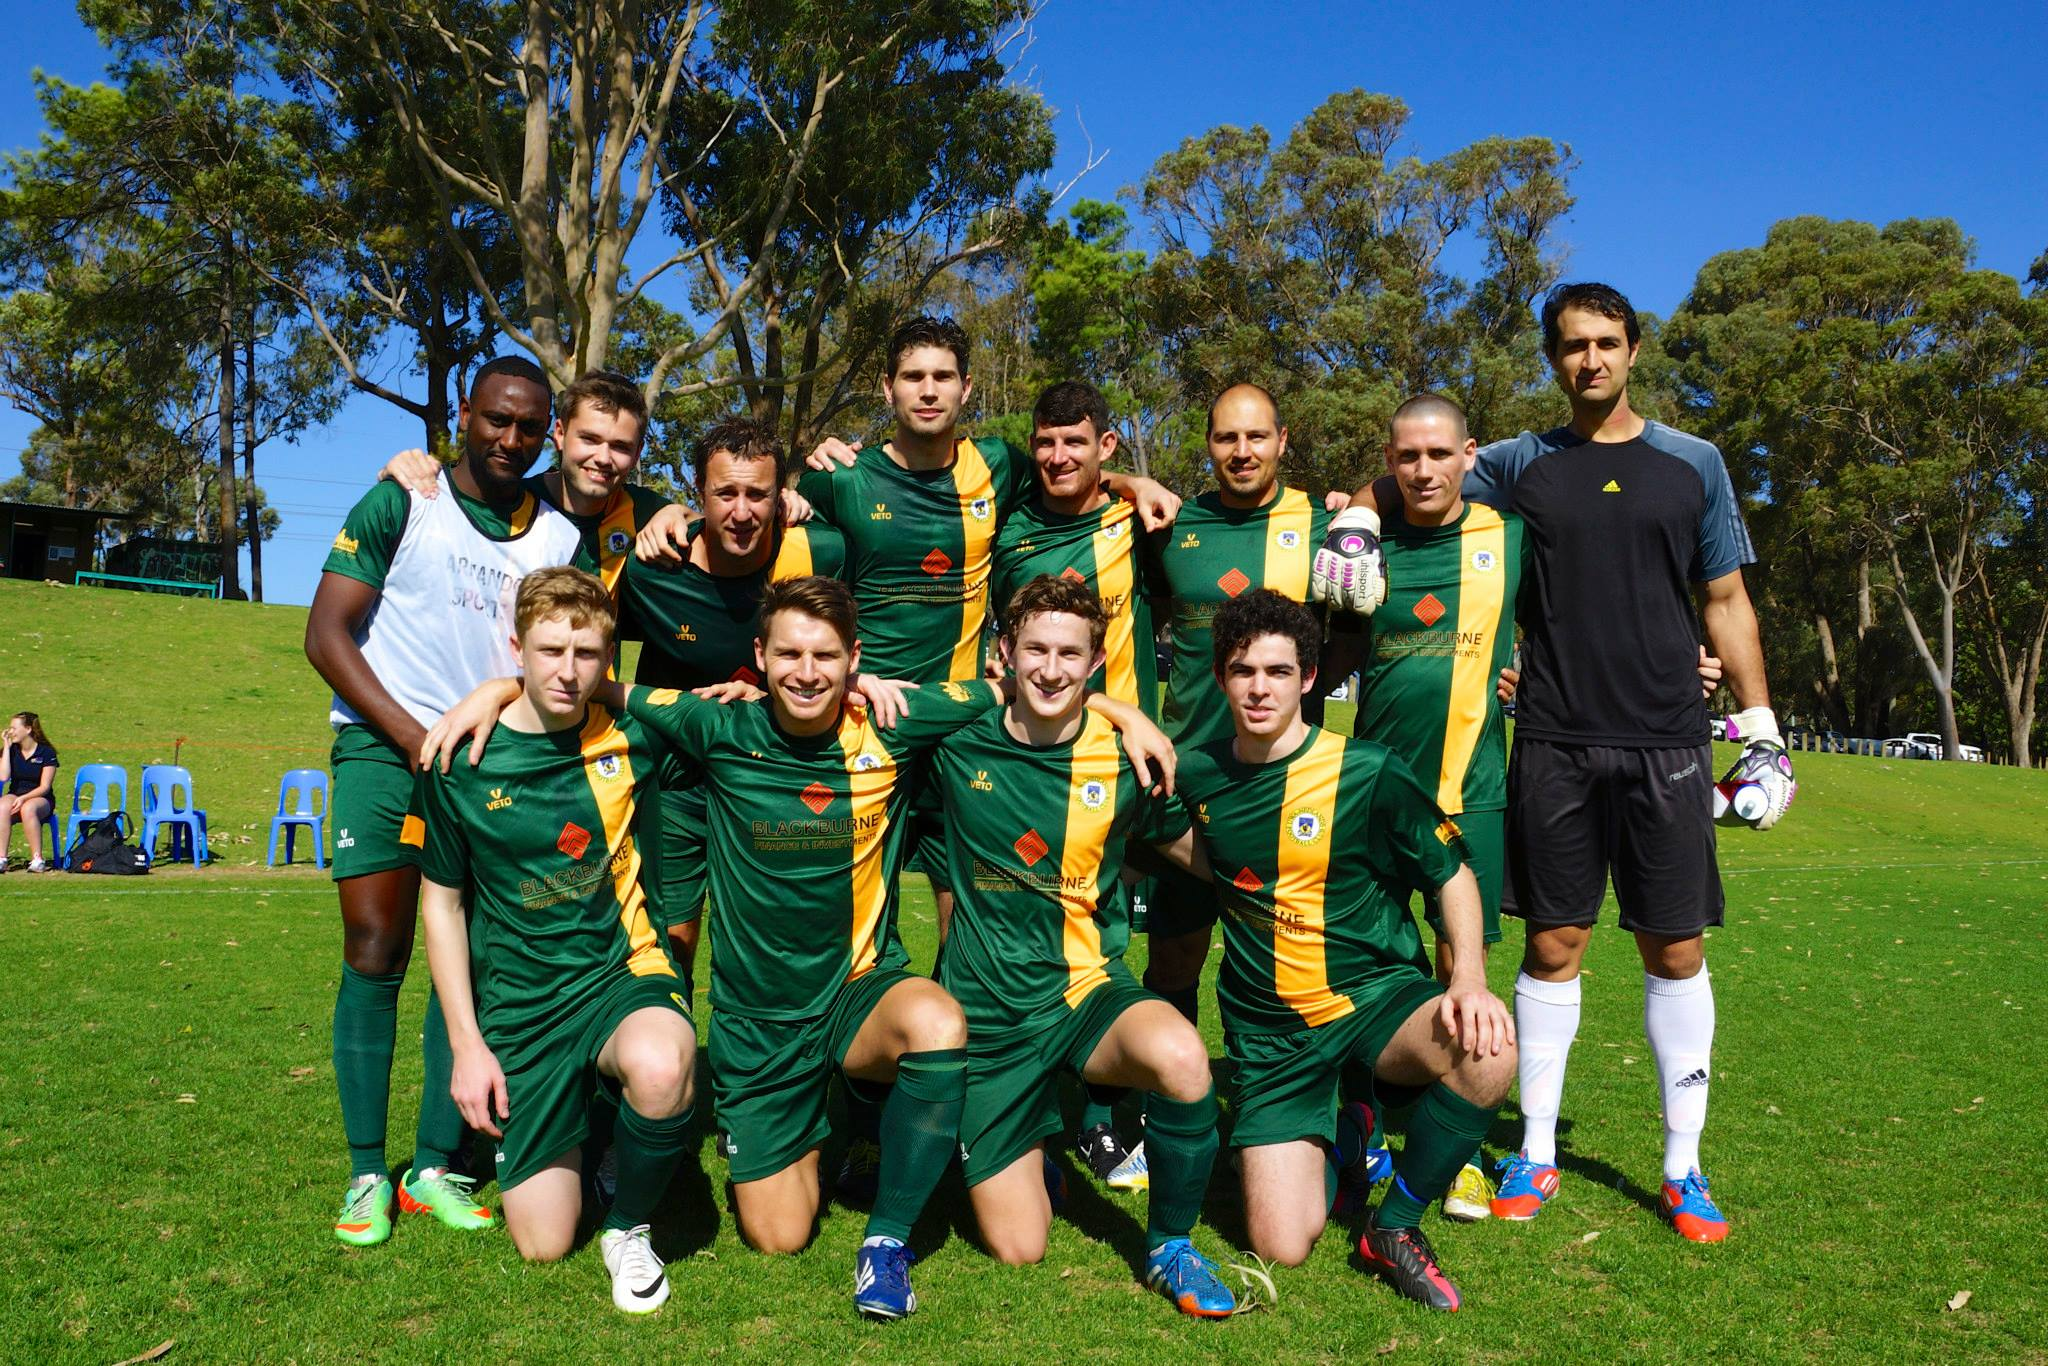 The UWANFC State league team exhibits the clubs best players